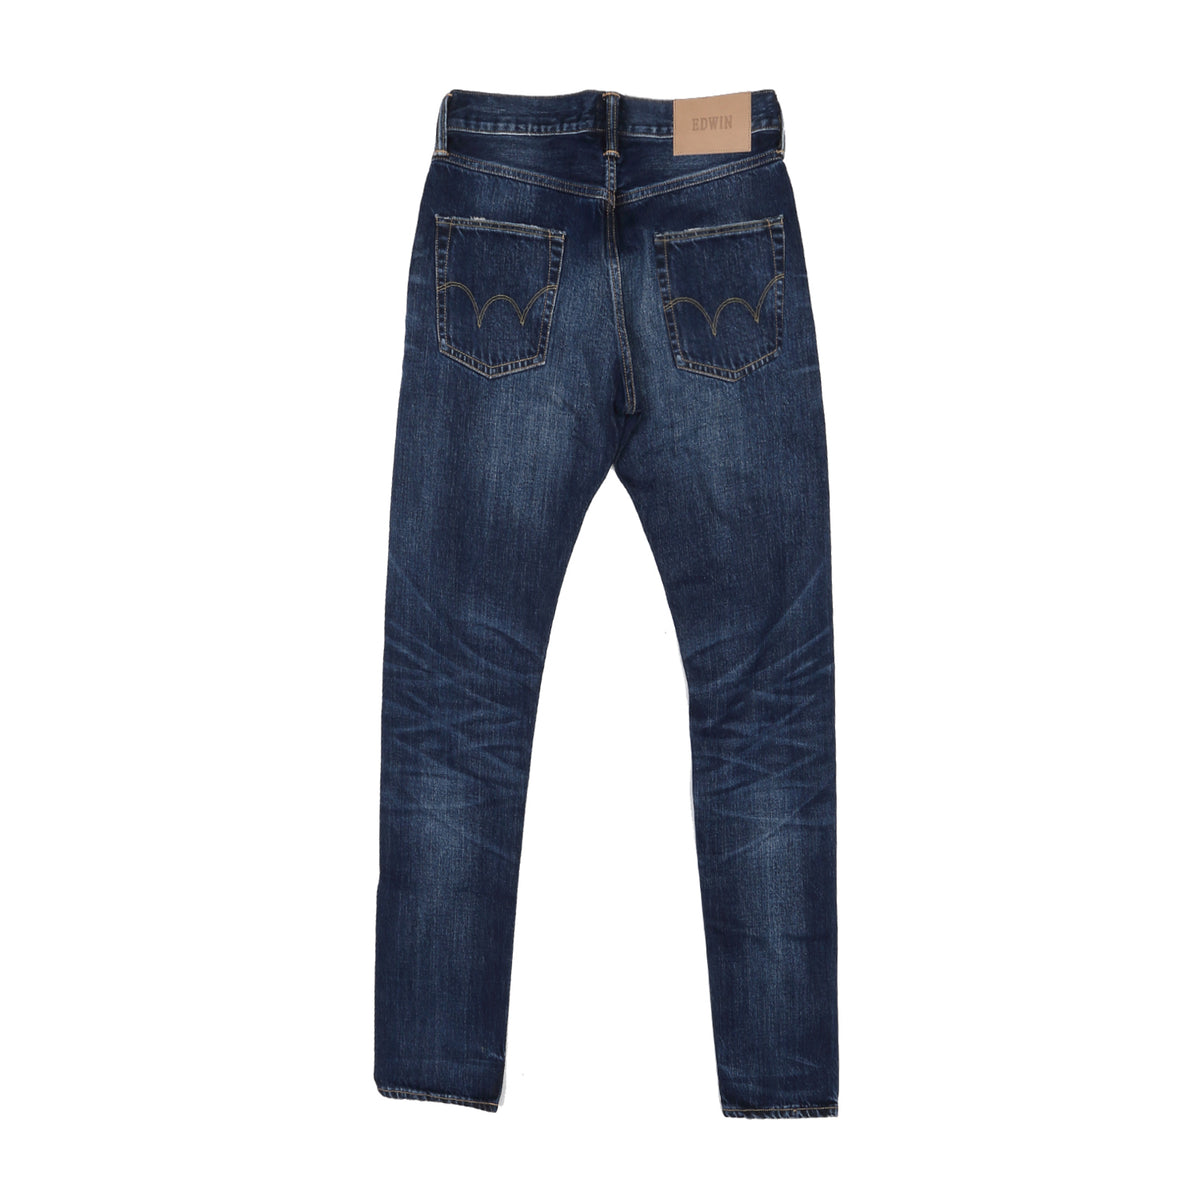 EDWIN - ED55 RAINBOW SELVAGE - DARK BLUE WASH